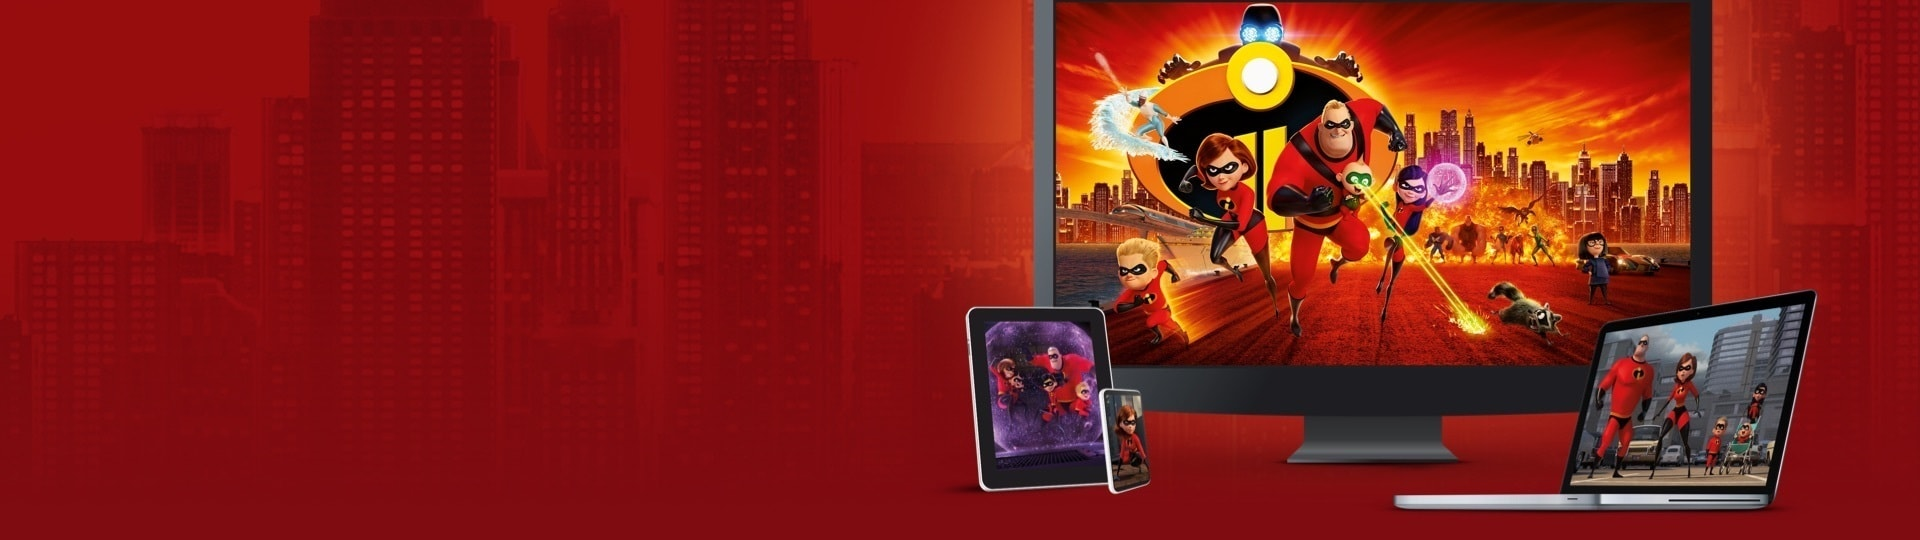 Incredibles 2 | Available to download and watch